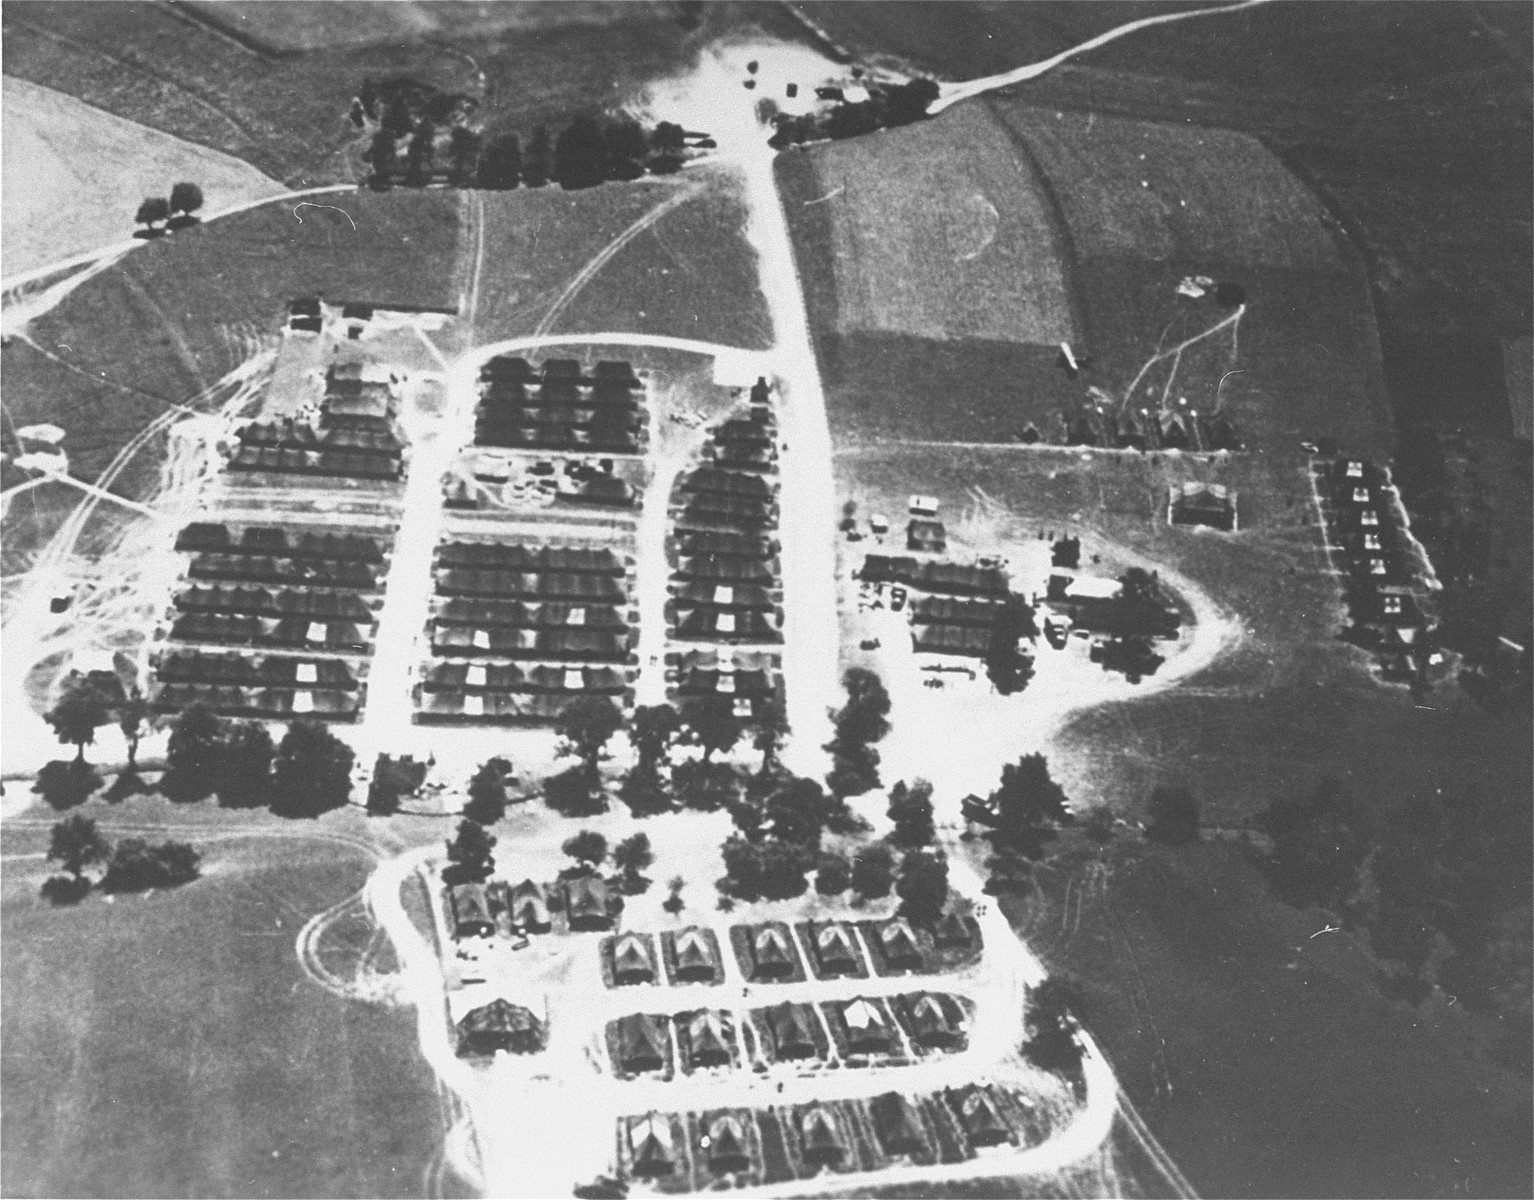 Aerial photograph of an area near the Mauthausen concentration camp, where the American army established its 130th Evacuation Hospital to care for survivors.